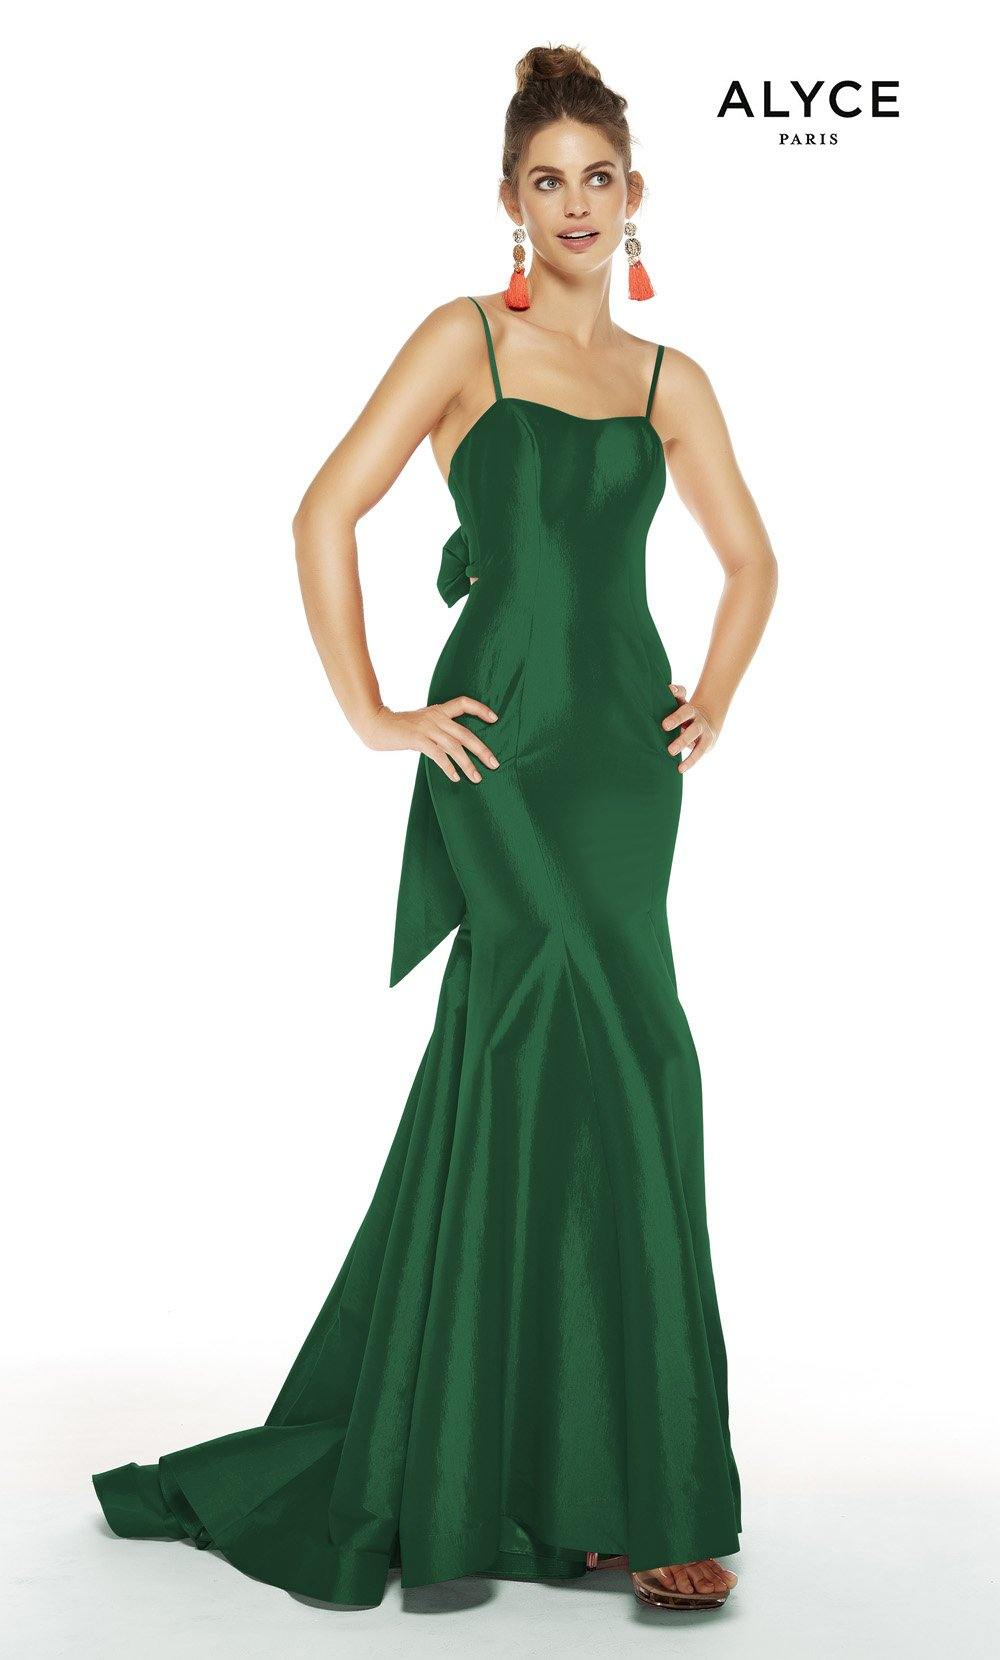 Emerald formal dress with a squared neckline